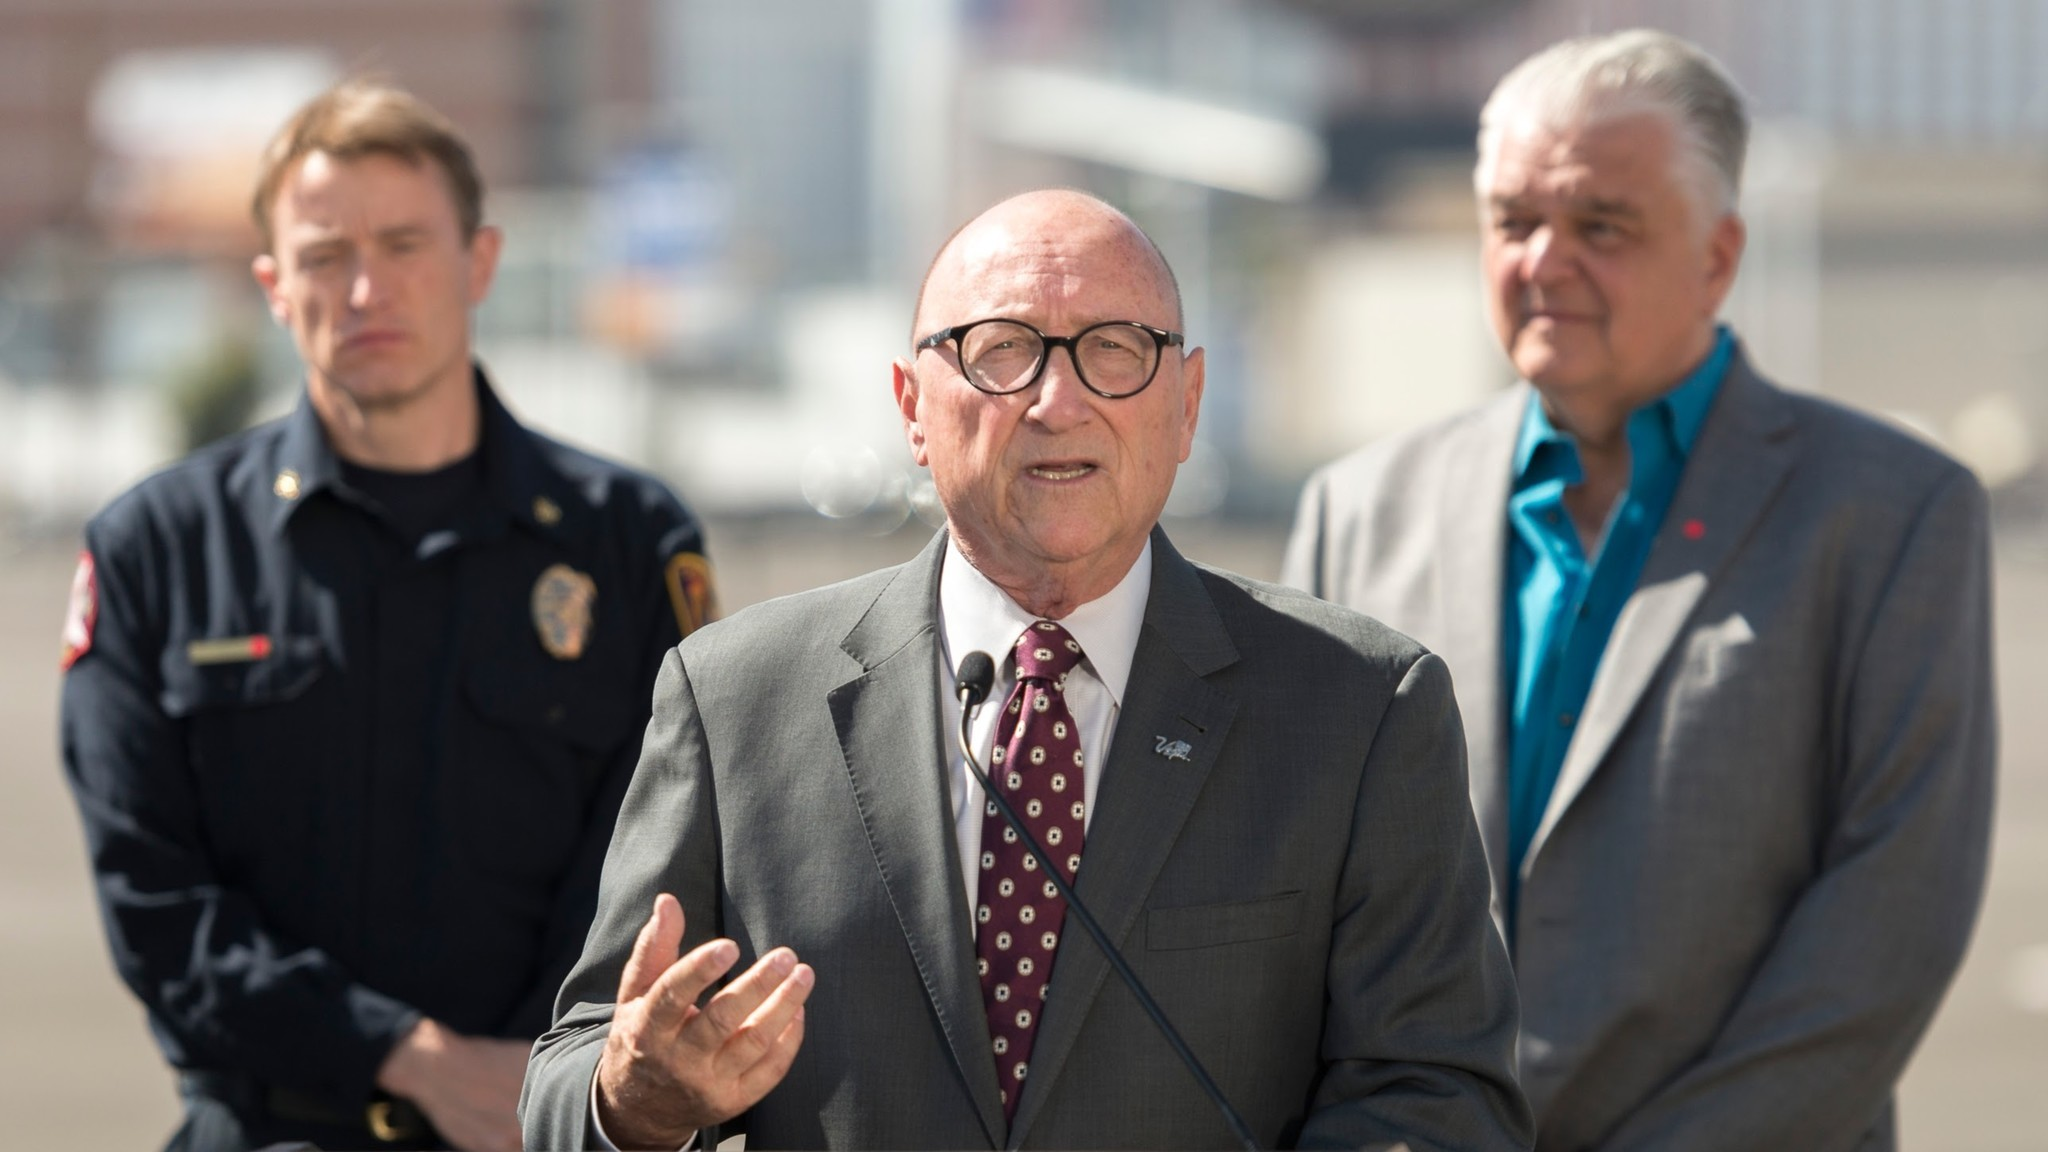 Rossi Ralenkotter, head of the Las Vegas Convention & Visitors Authority, told reporters last week that Las Vegas would suspend its marketing campaign for a while.